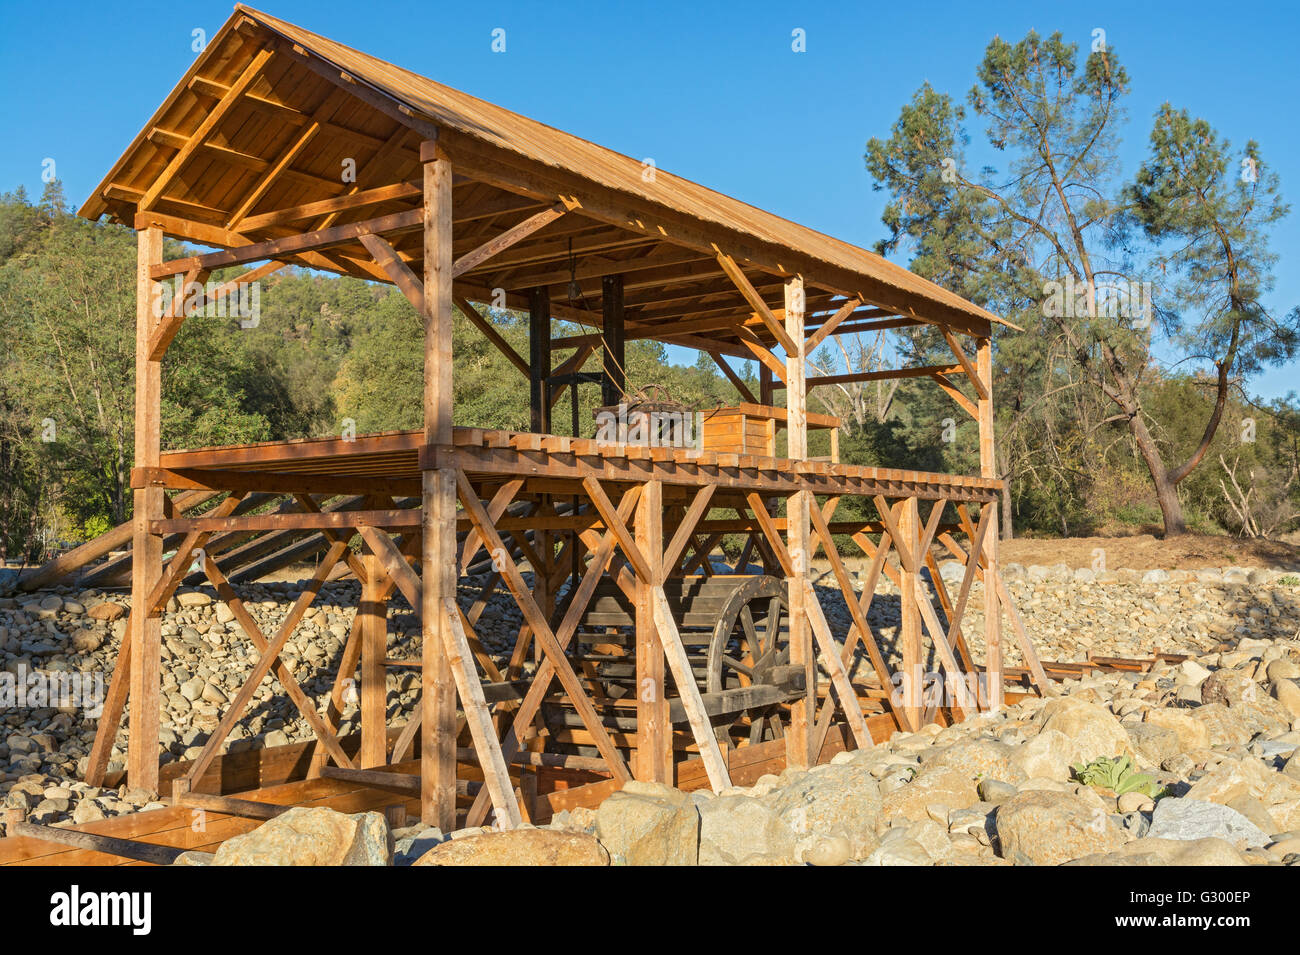 California, Coloma, Marshall Gold Discovery State Historic Park, Sutter's Mill replica - Stock Image